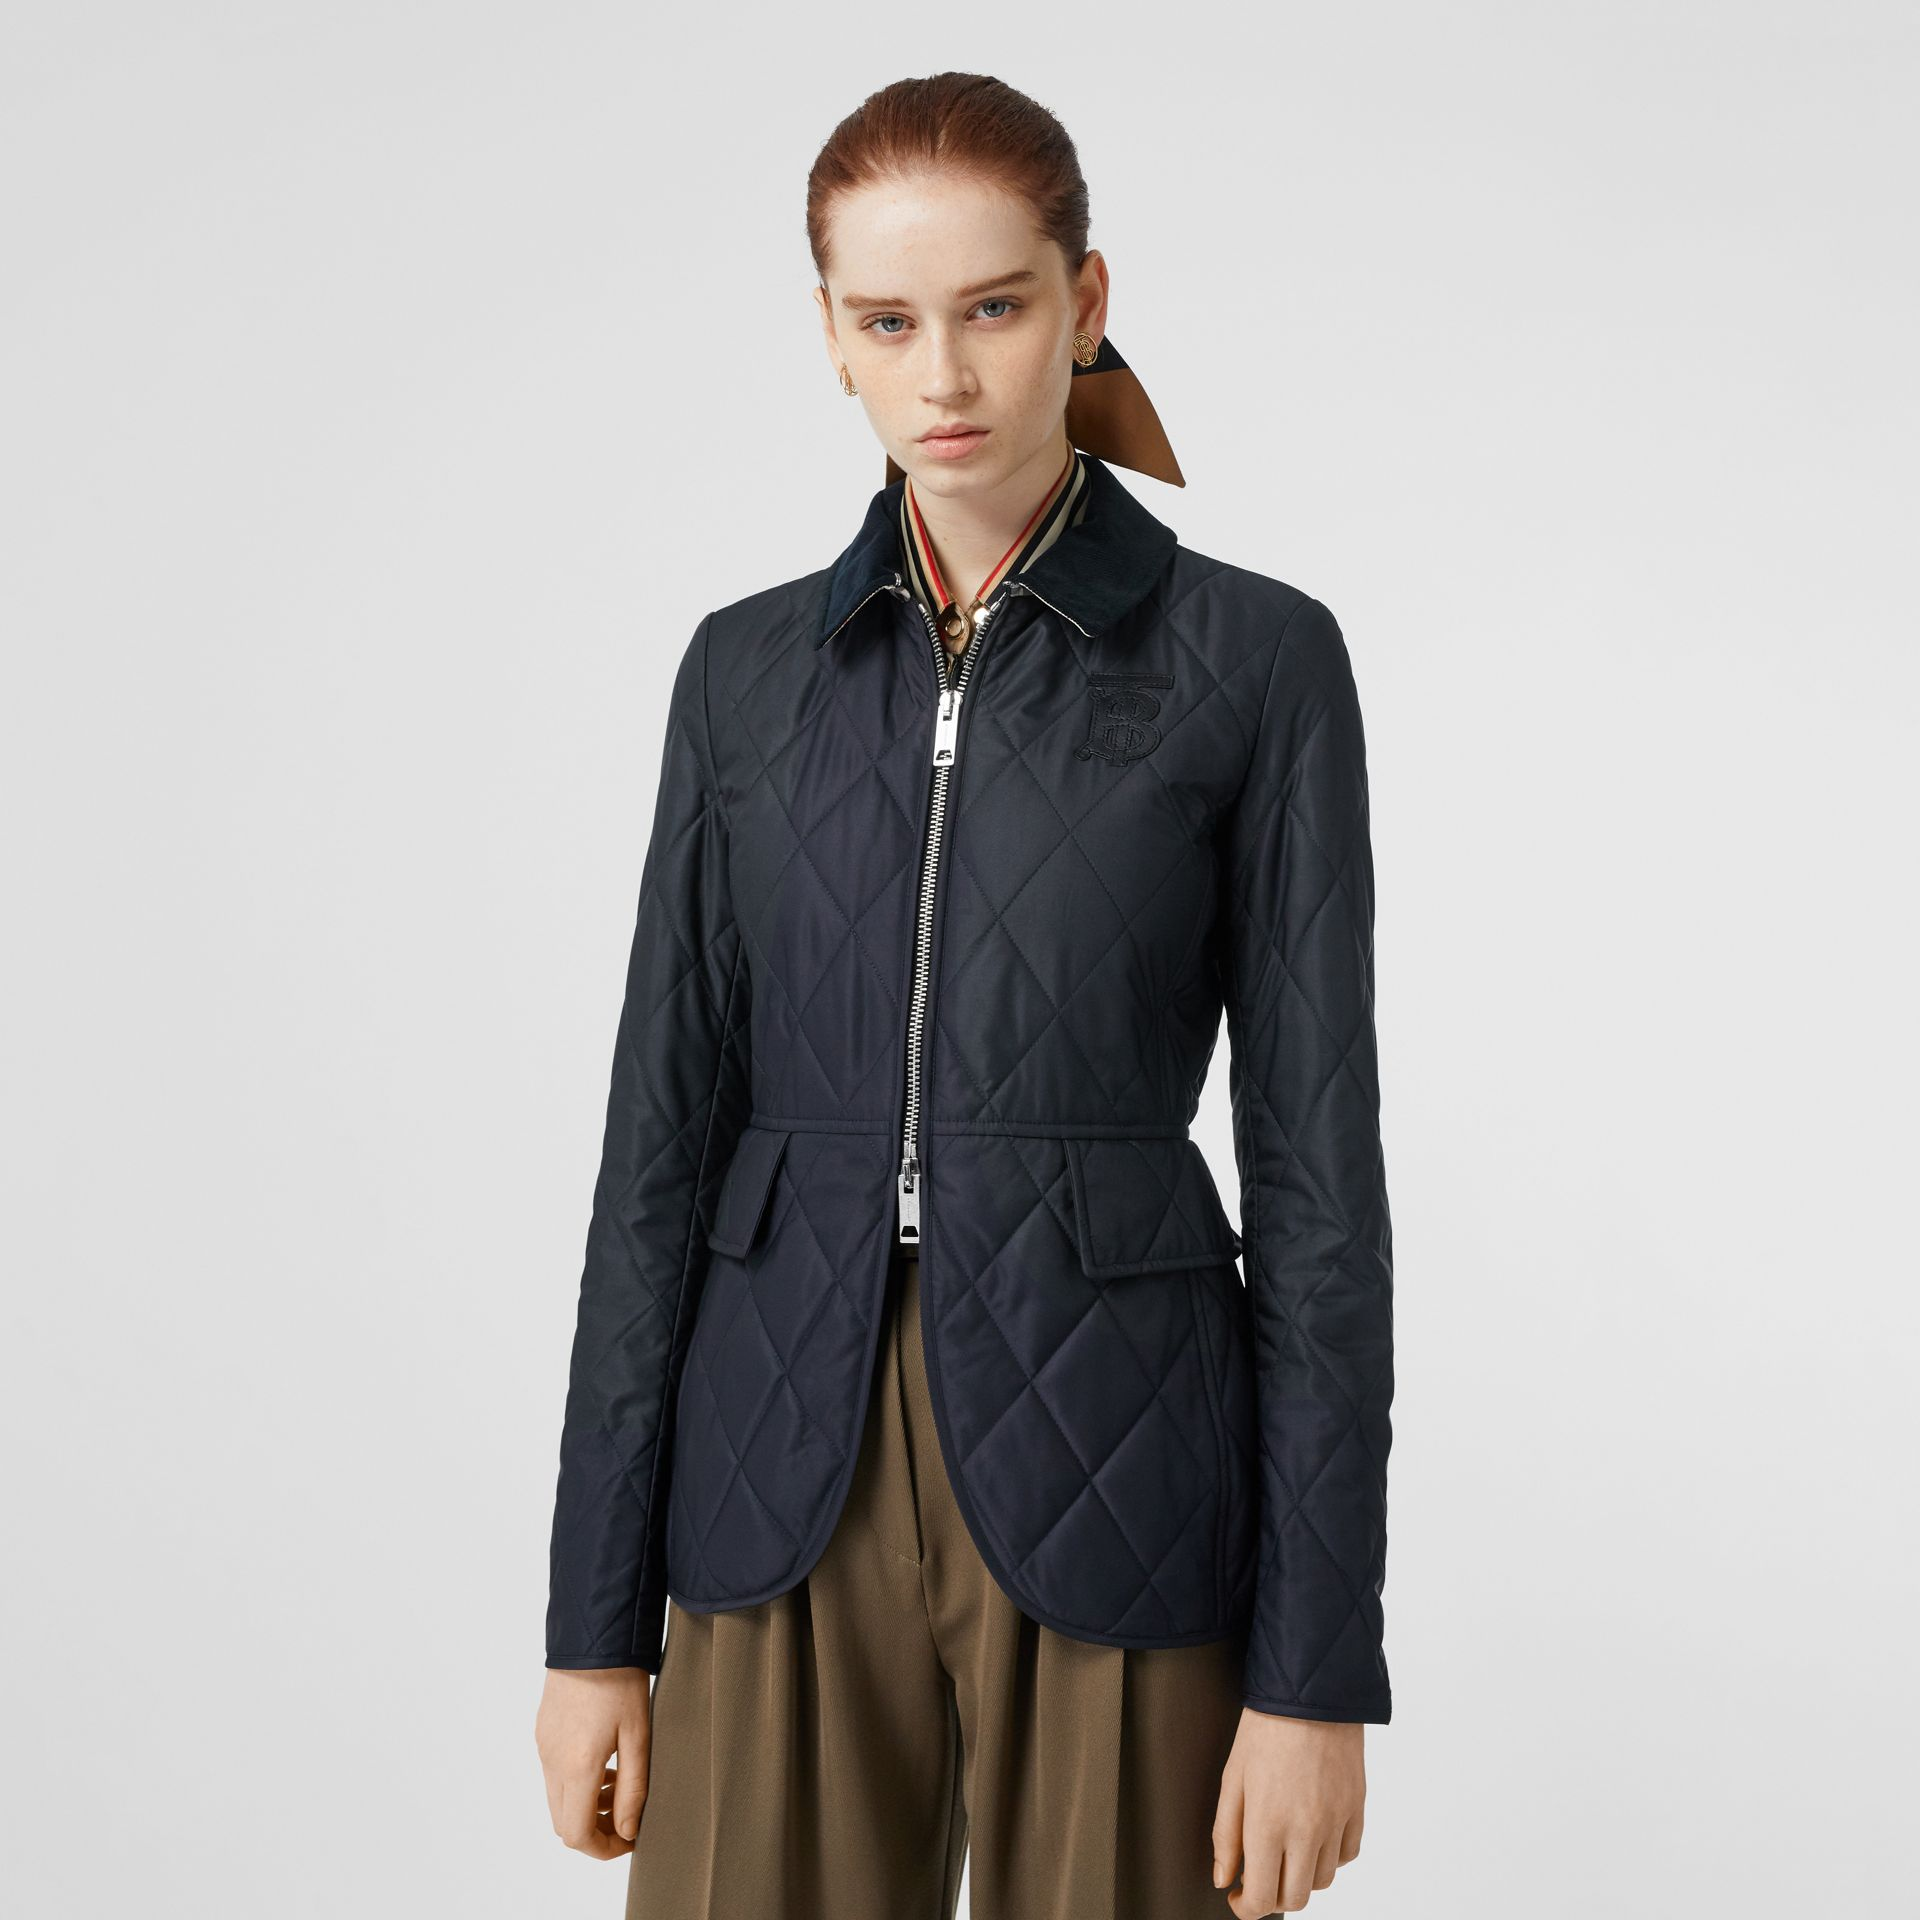 Monogram Motif Quilted Riding Jacket in Navy - Women | Burberry - gallery image 6